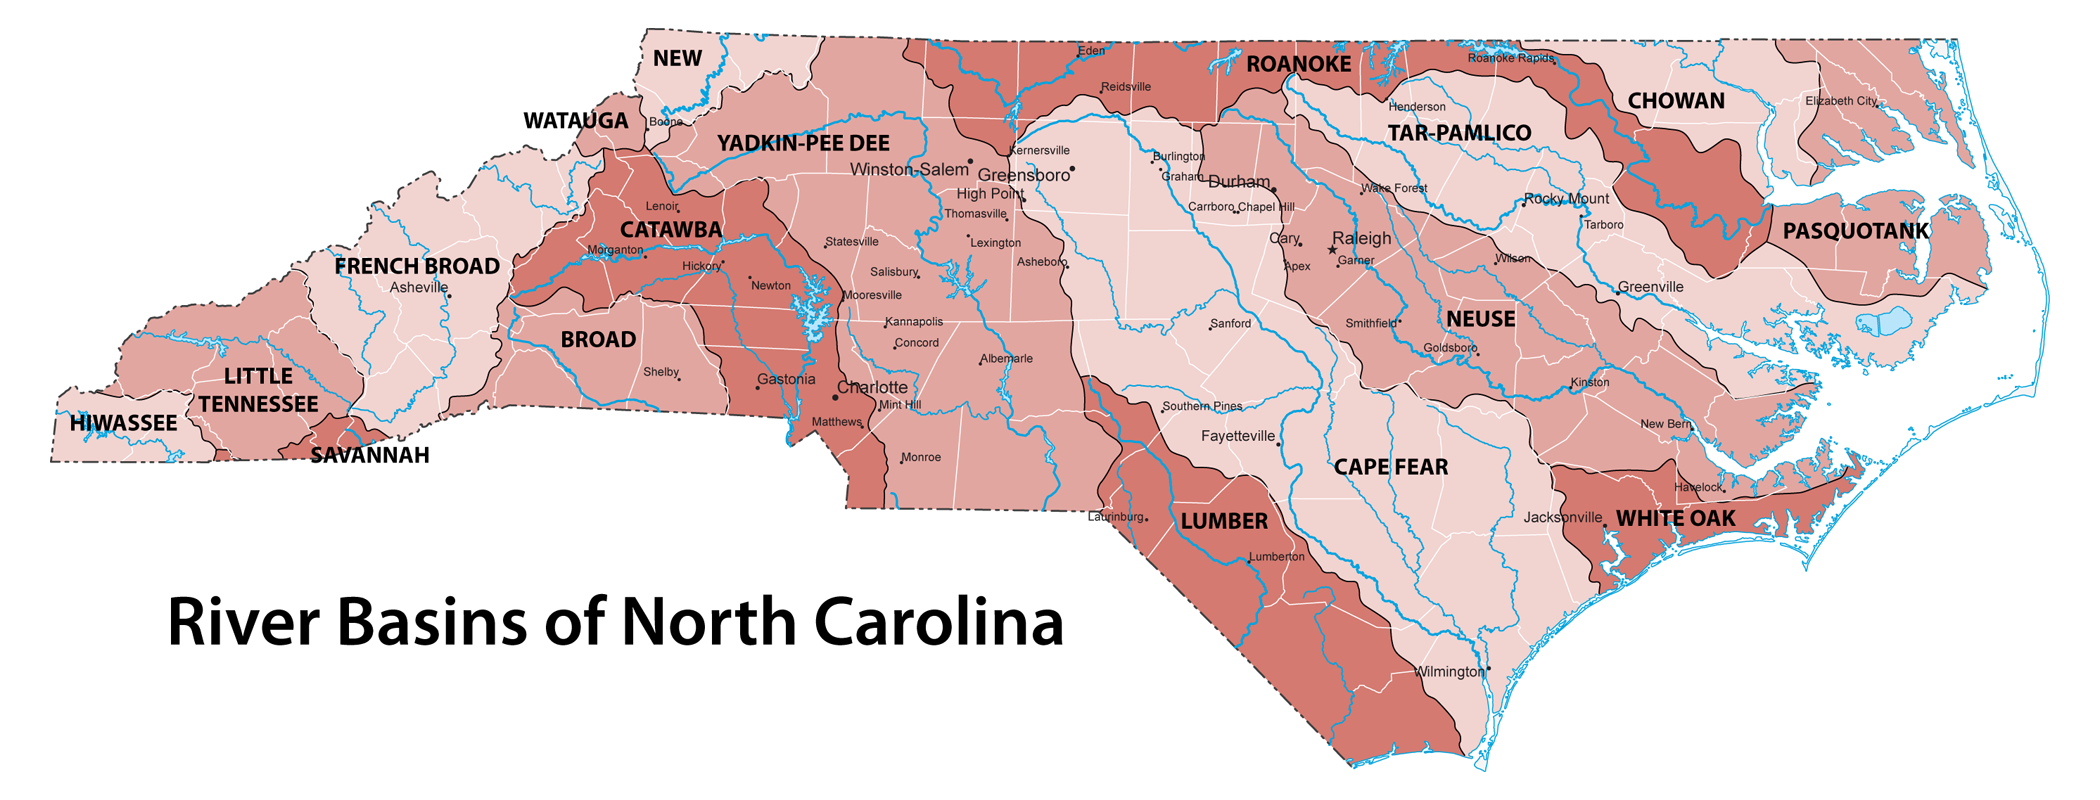 Rivers and river basins of North Carolina